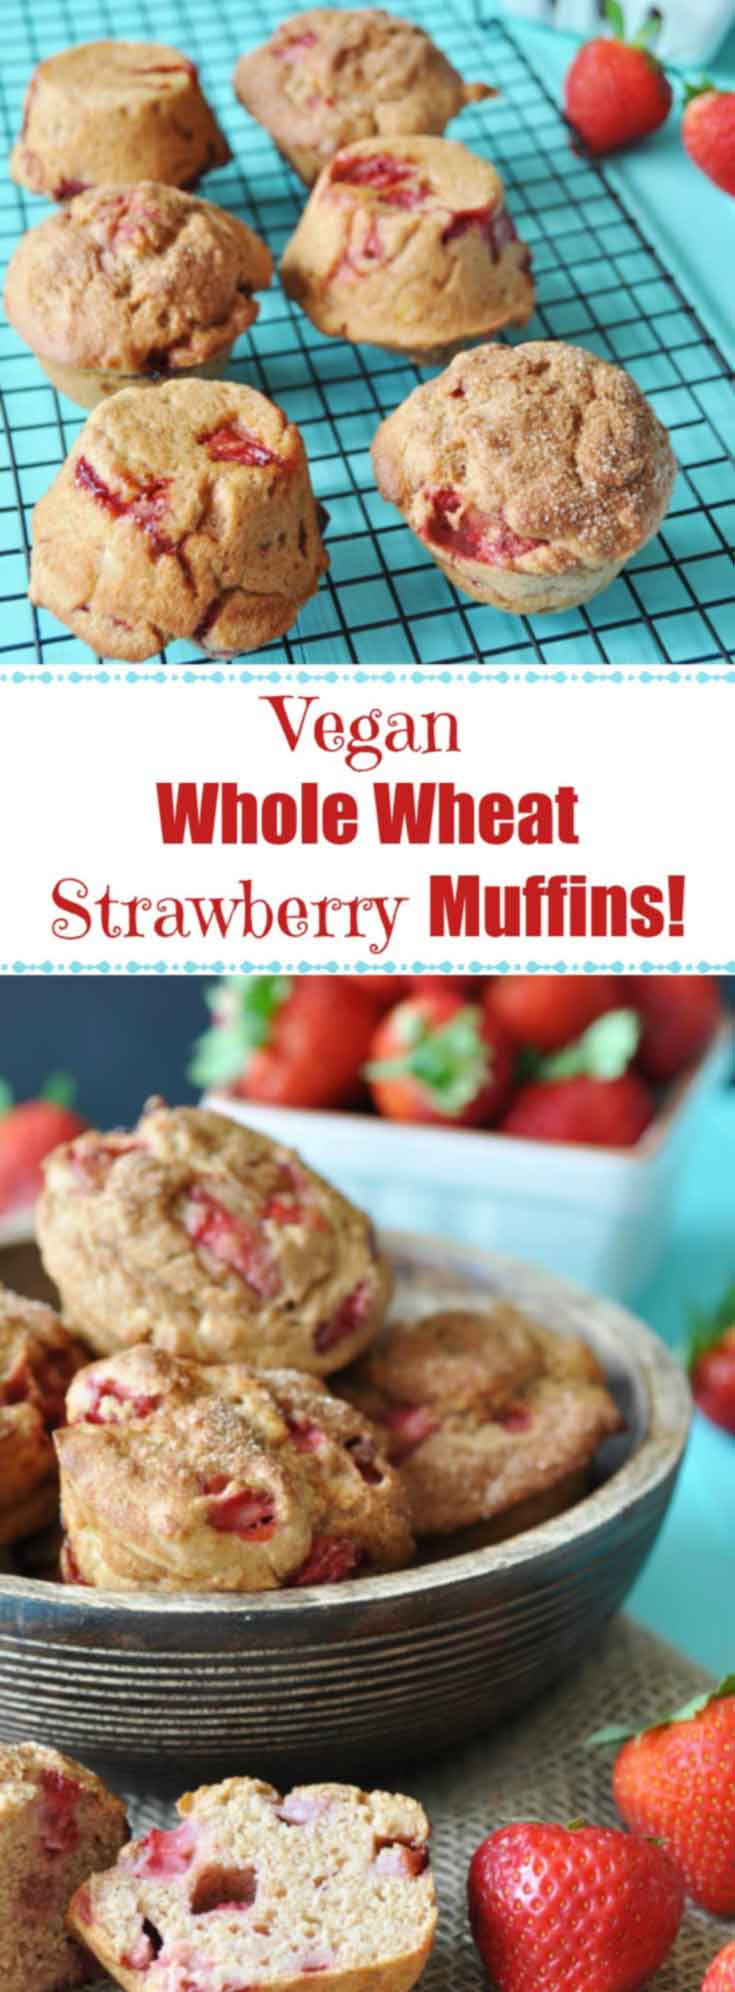 Vegan Whole Wheat Strawberry Muffins! This healthy and delicious recipe is bursting with fresh seasonal strawberries and nutty whole wheat flour. You have to try them. www.veganosity.com